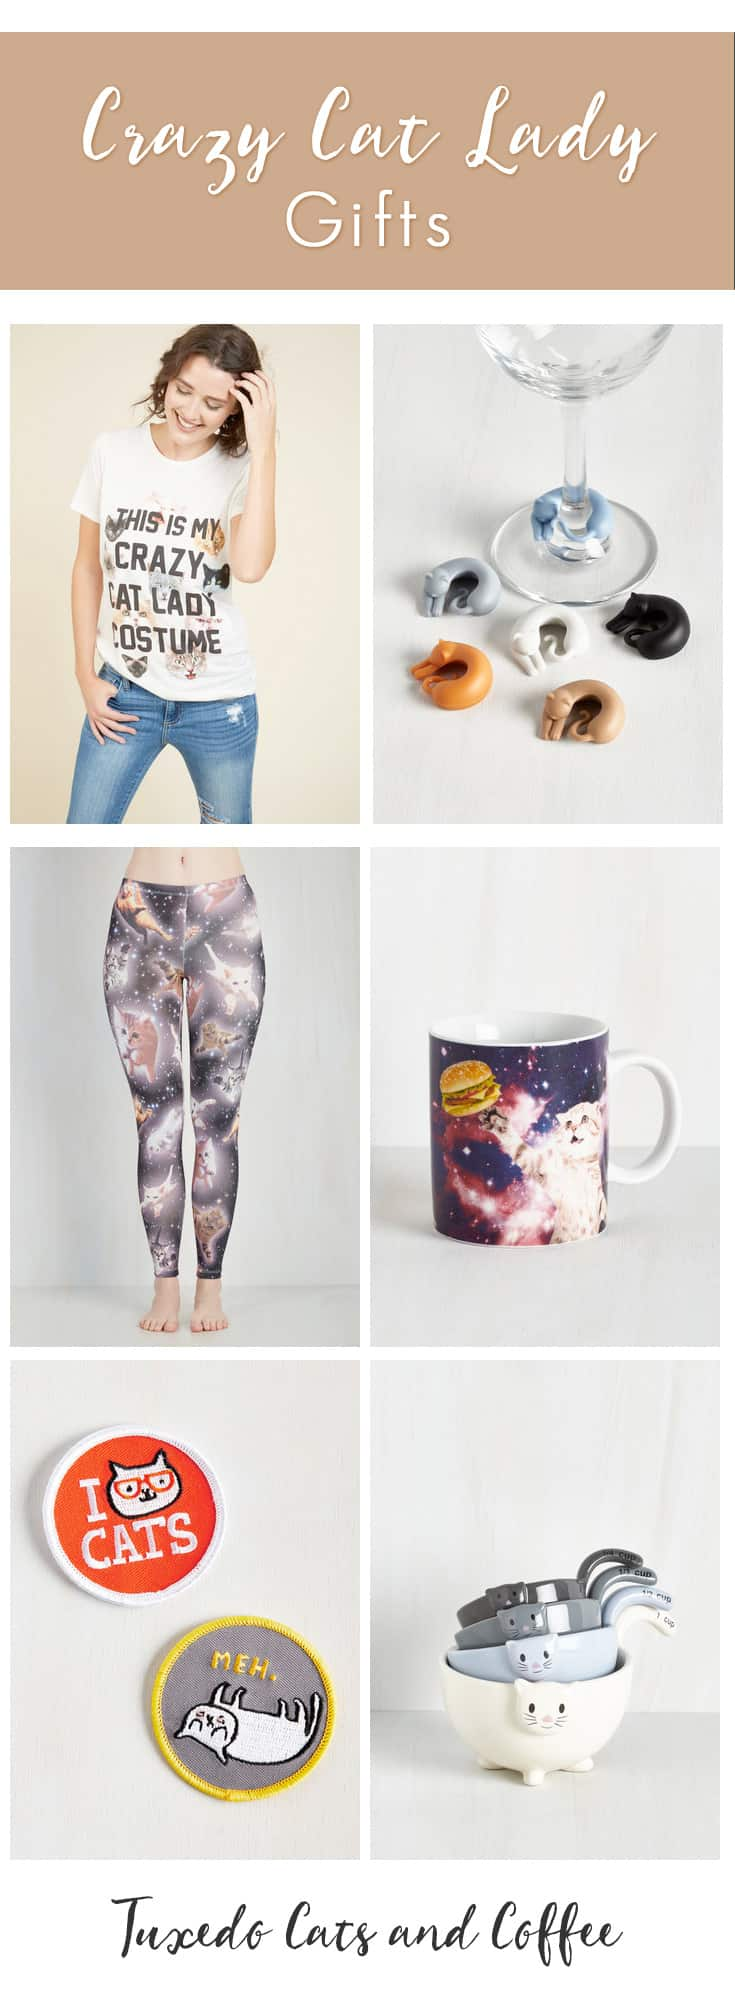 I don't know about you, but I'm totally a crazy cat lady (I named my blog after my tuxedo cat!), and I know that I would proudly wear or use most of the things on this list. What about you? Here are some perfect crazy cat lady gifts for the crazy cat lady in your life. :)